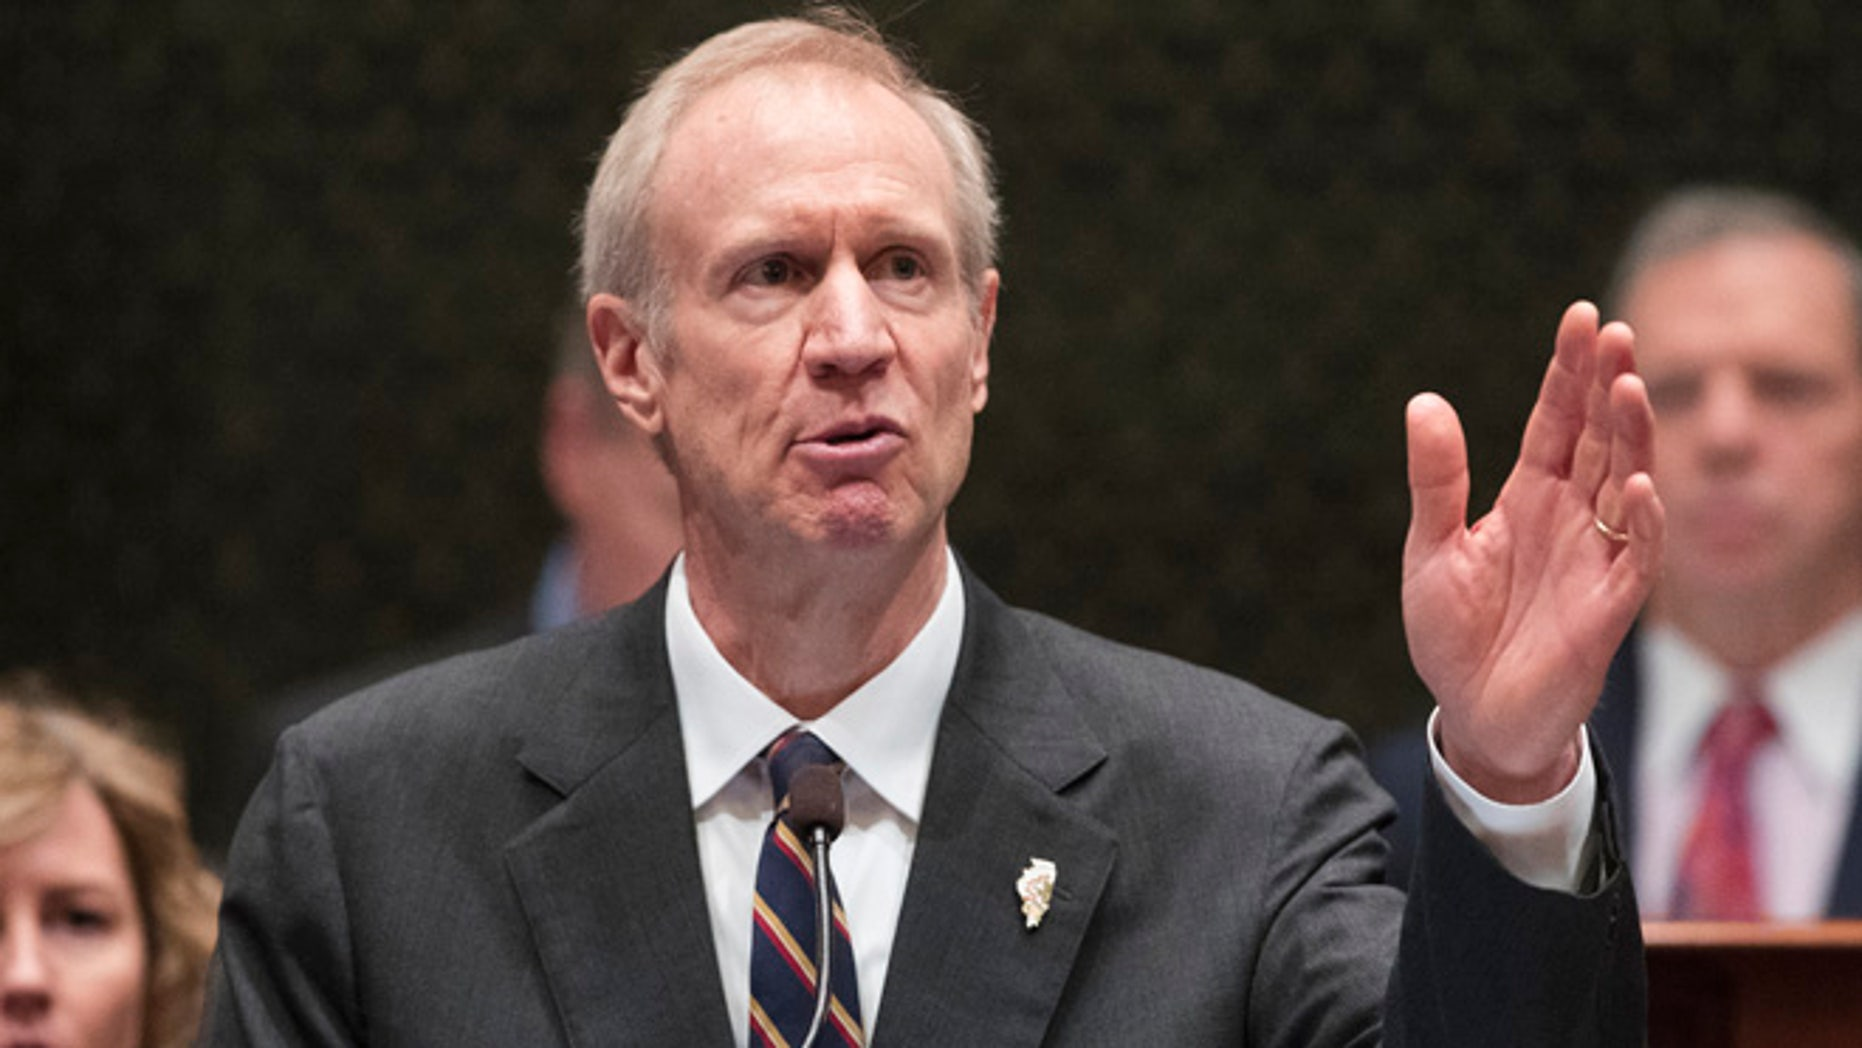 Illinois Gov. Bruce Rauner speaks in the state House chamber in Springfield this past January.